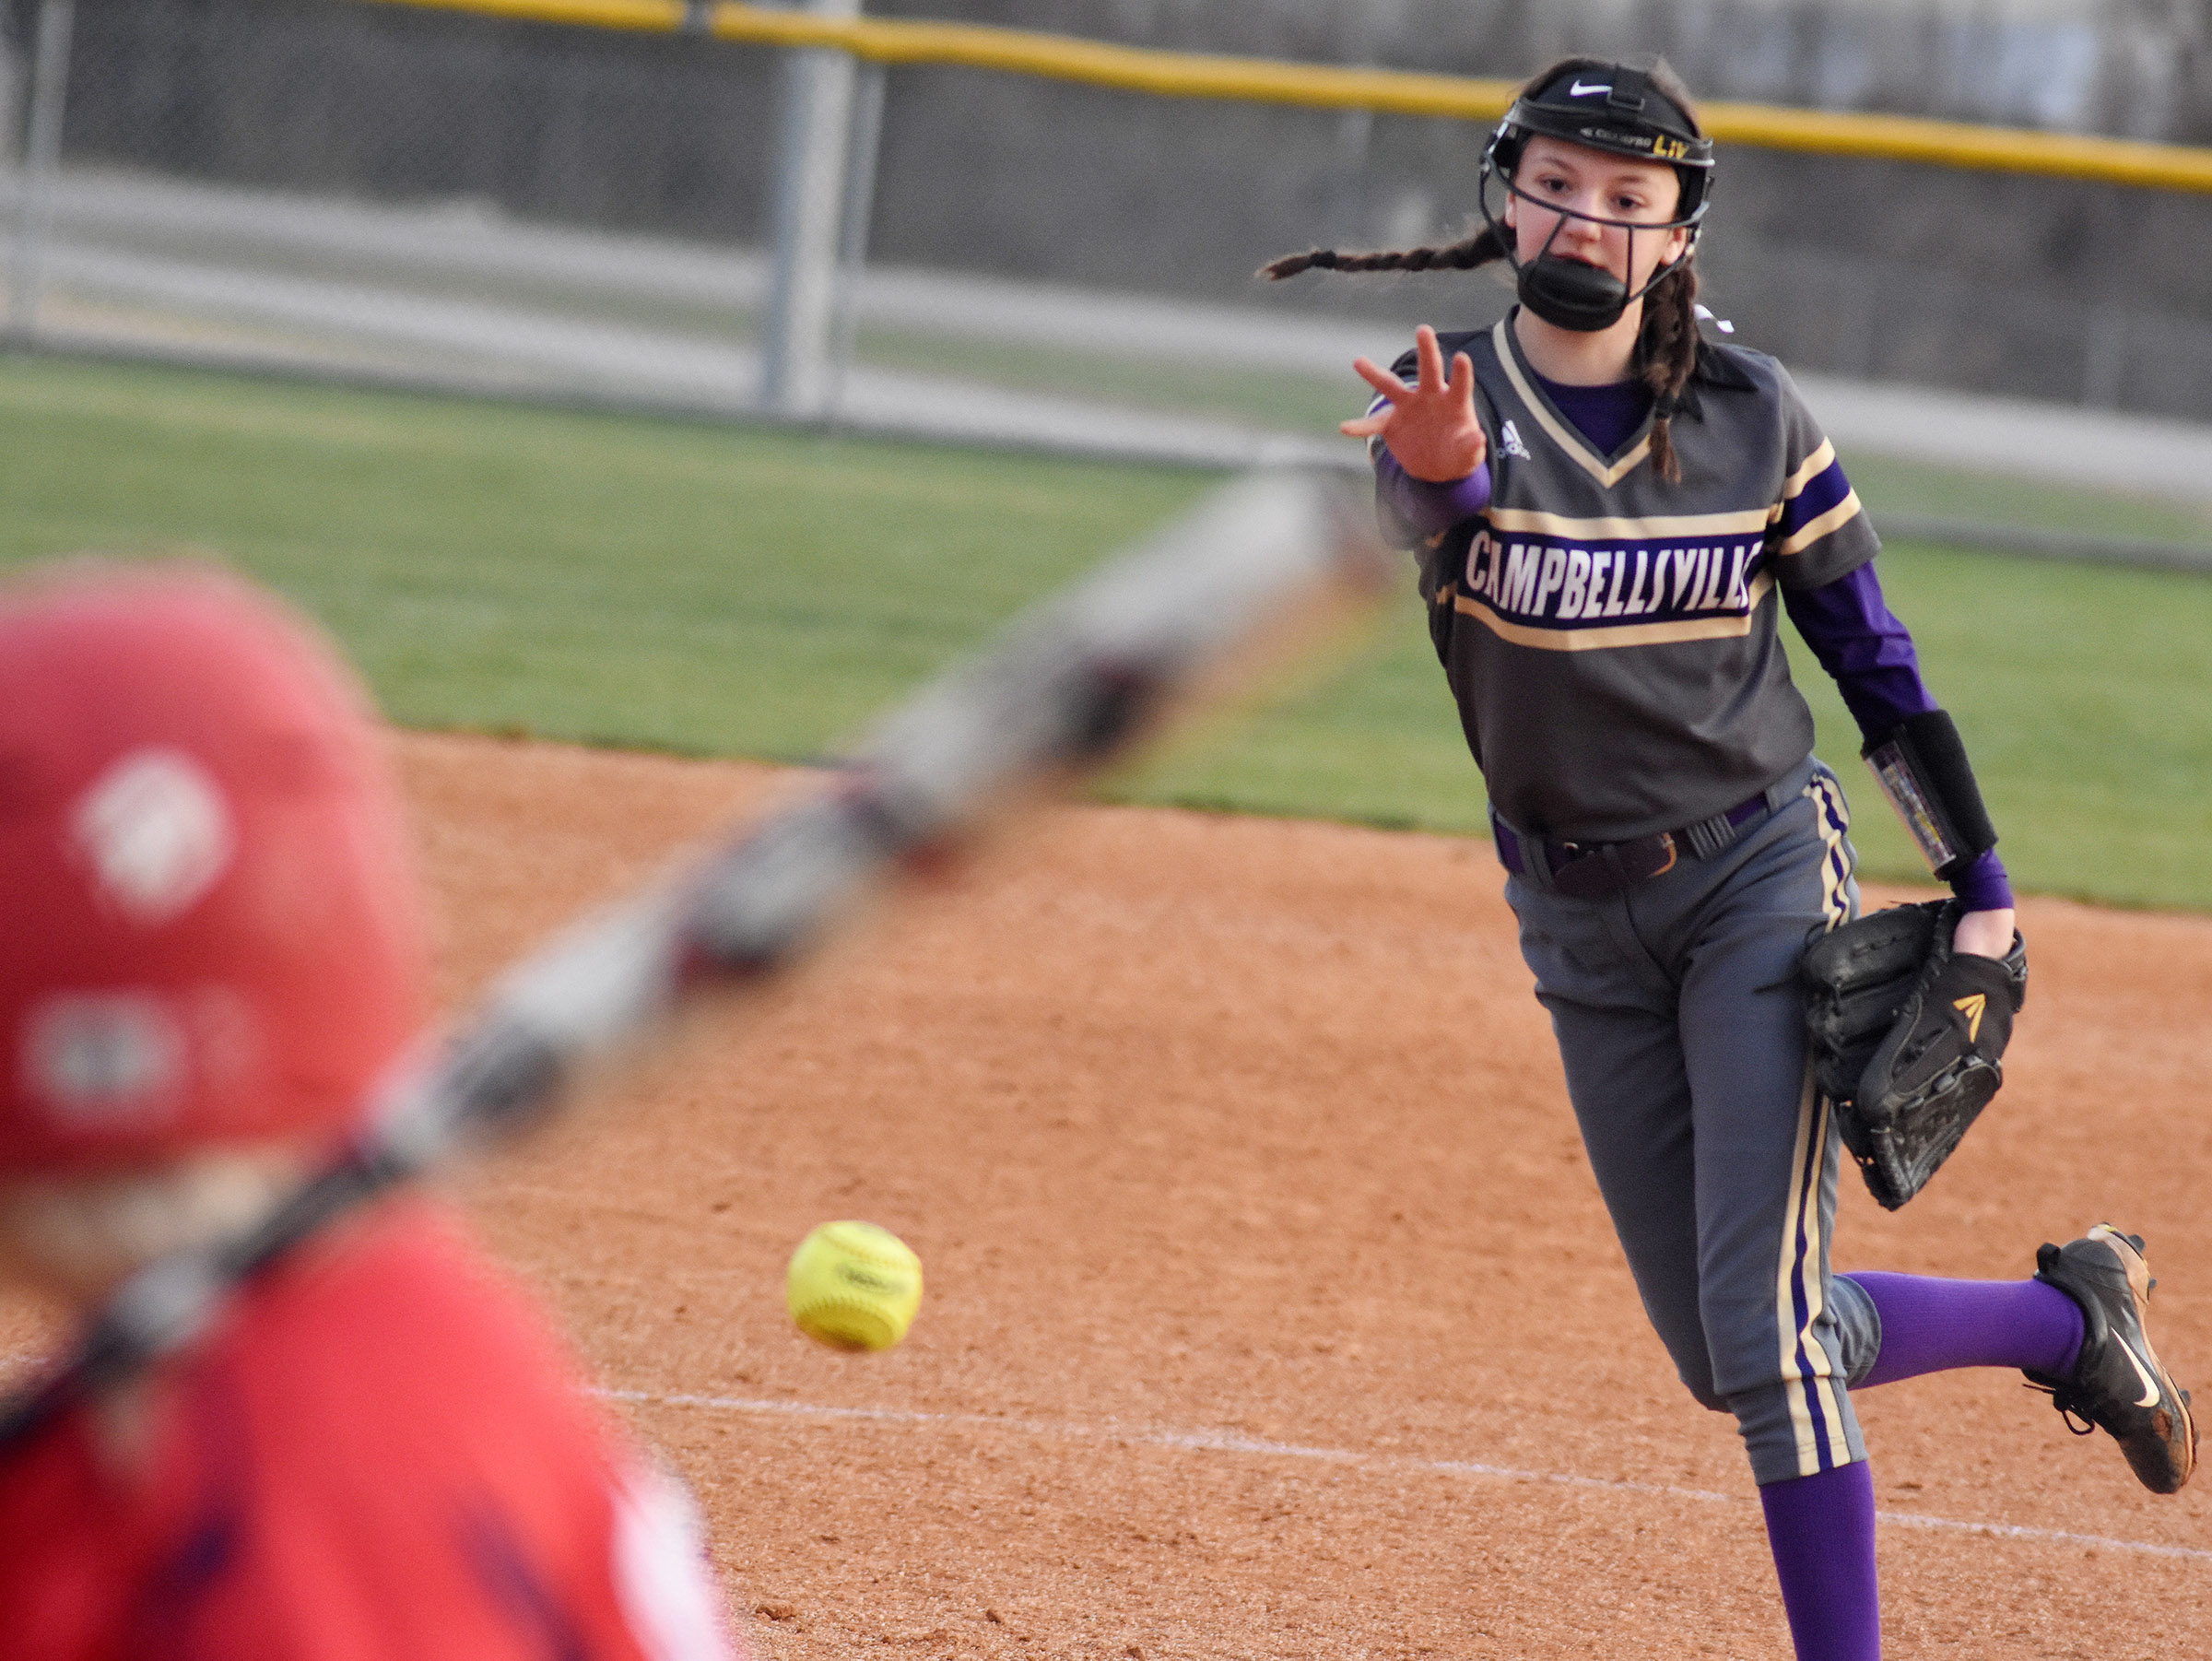 Campbellsville Middle School seventh-grader Bri Hayes pitches.